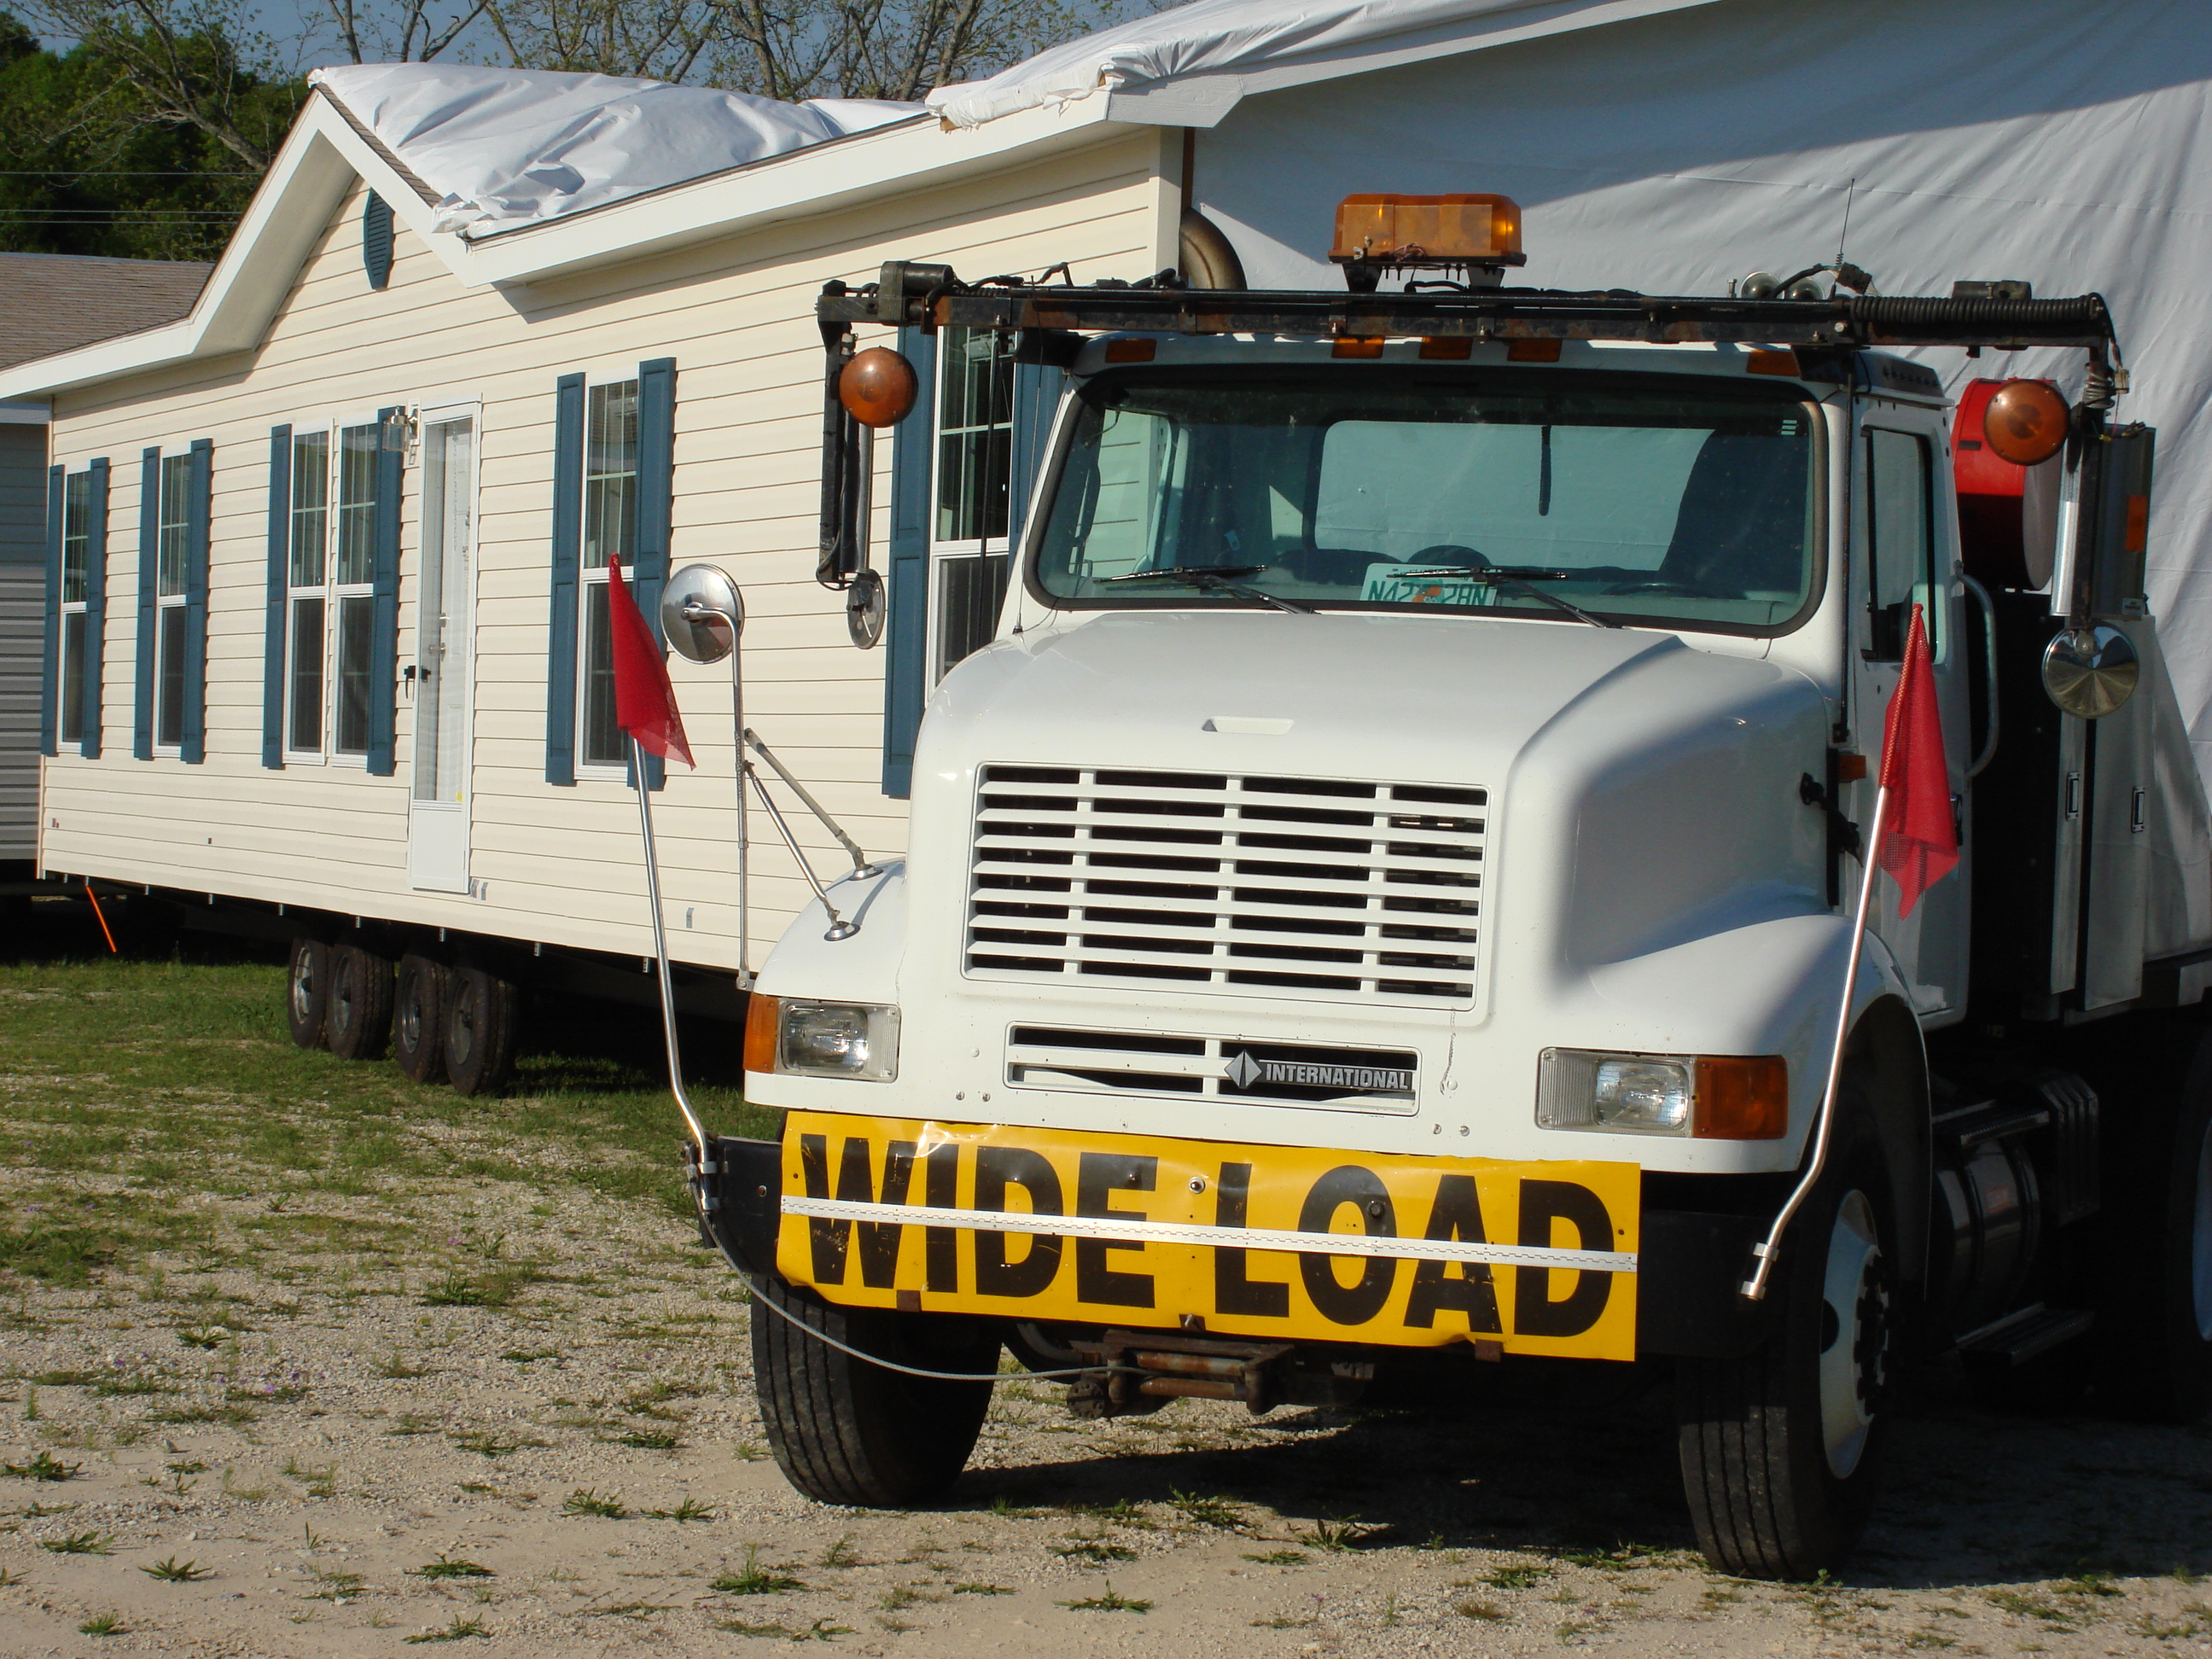 McClelland's LLC on mobile lifting equipment home, mobile home toter cabover, mobile home movers cab over, mobile home movers moving, mobile home toter conversions, mobile home mover on tracks, mobile home toter craigslist, mobile home transport, mobile home toter beds,